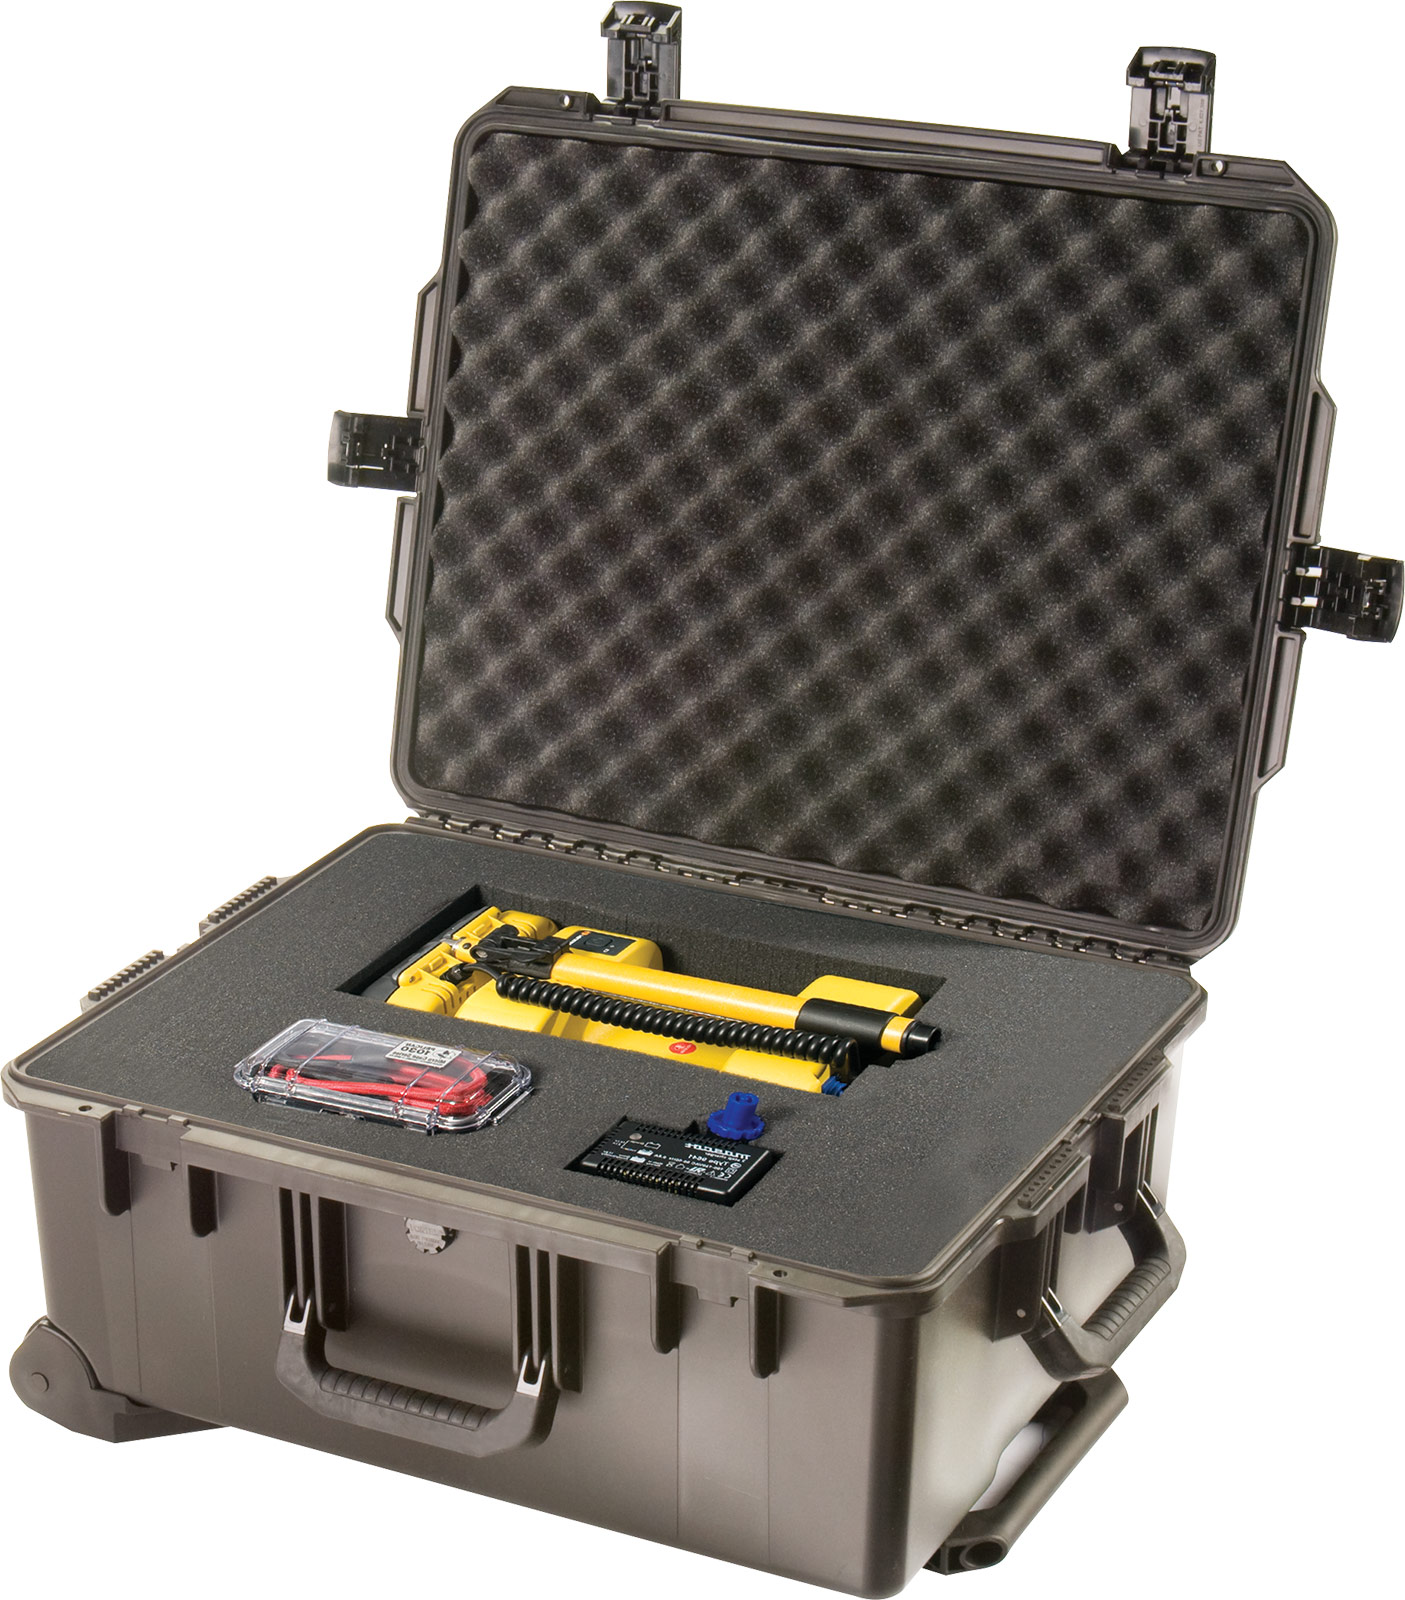 pelican im2720 storm remote light case